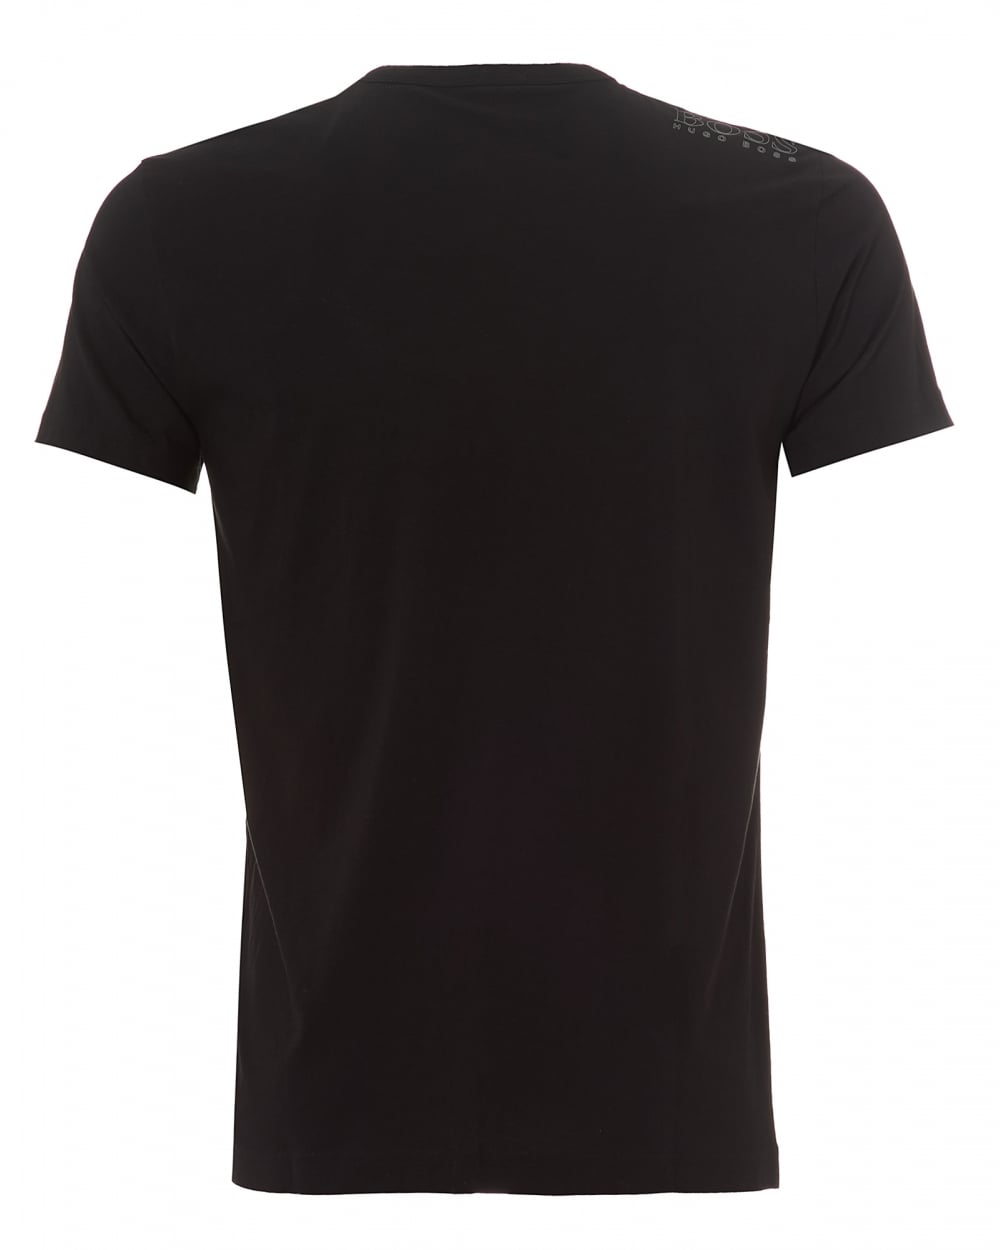 Black tshirt plain images galleries for T shirt plain black